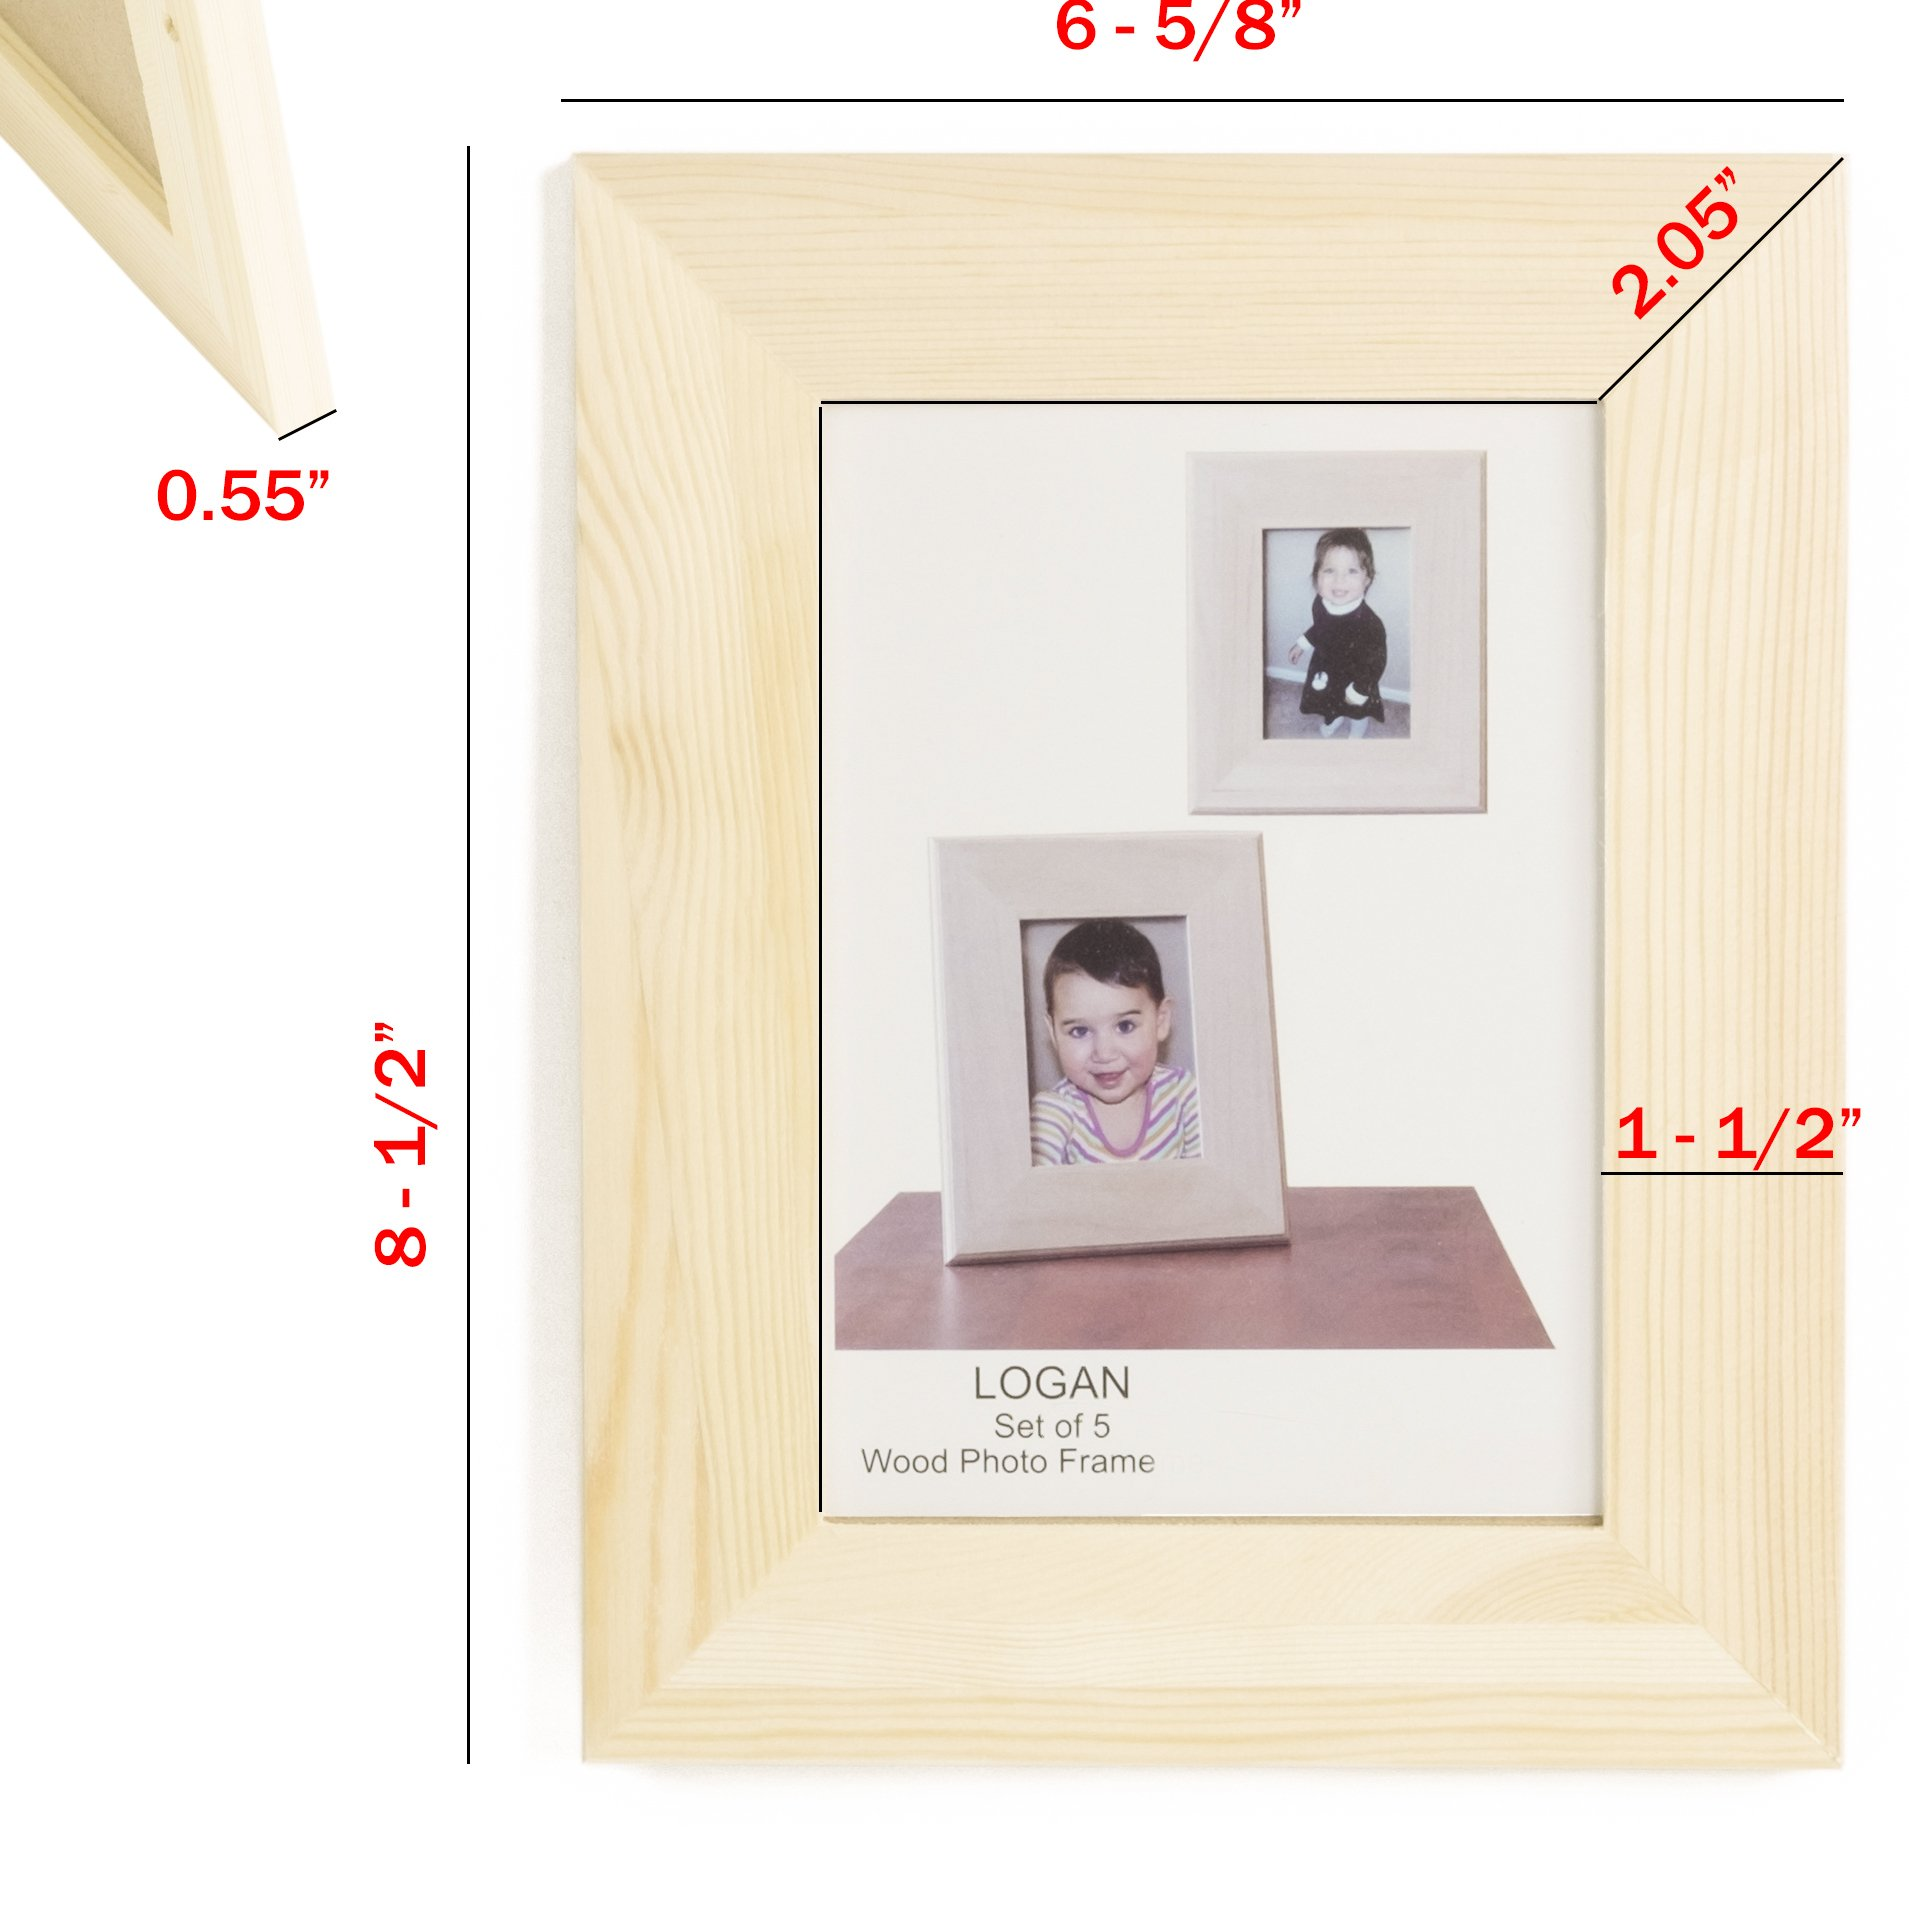 WALLNITURE Kid's DIY Projects Picture Frames Crafting Unfinished Wood 4x6 Set of 10 by Fasthomegoods (Image #2)